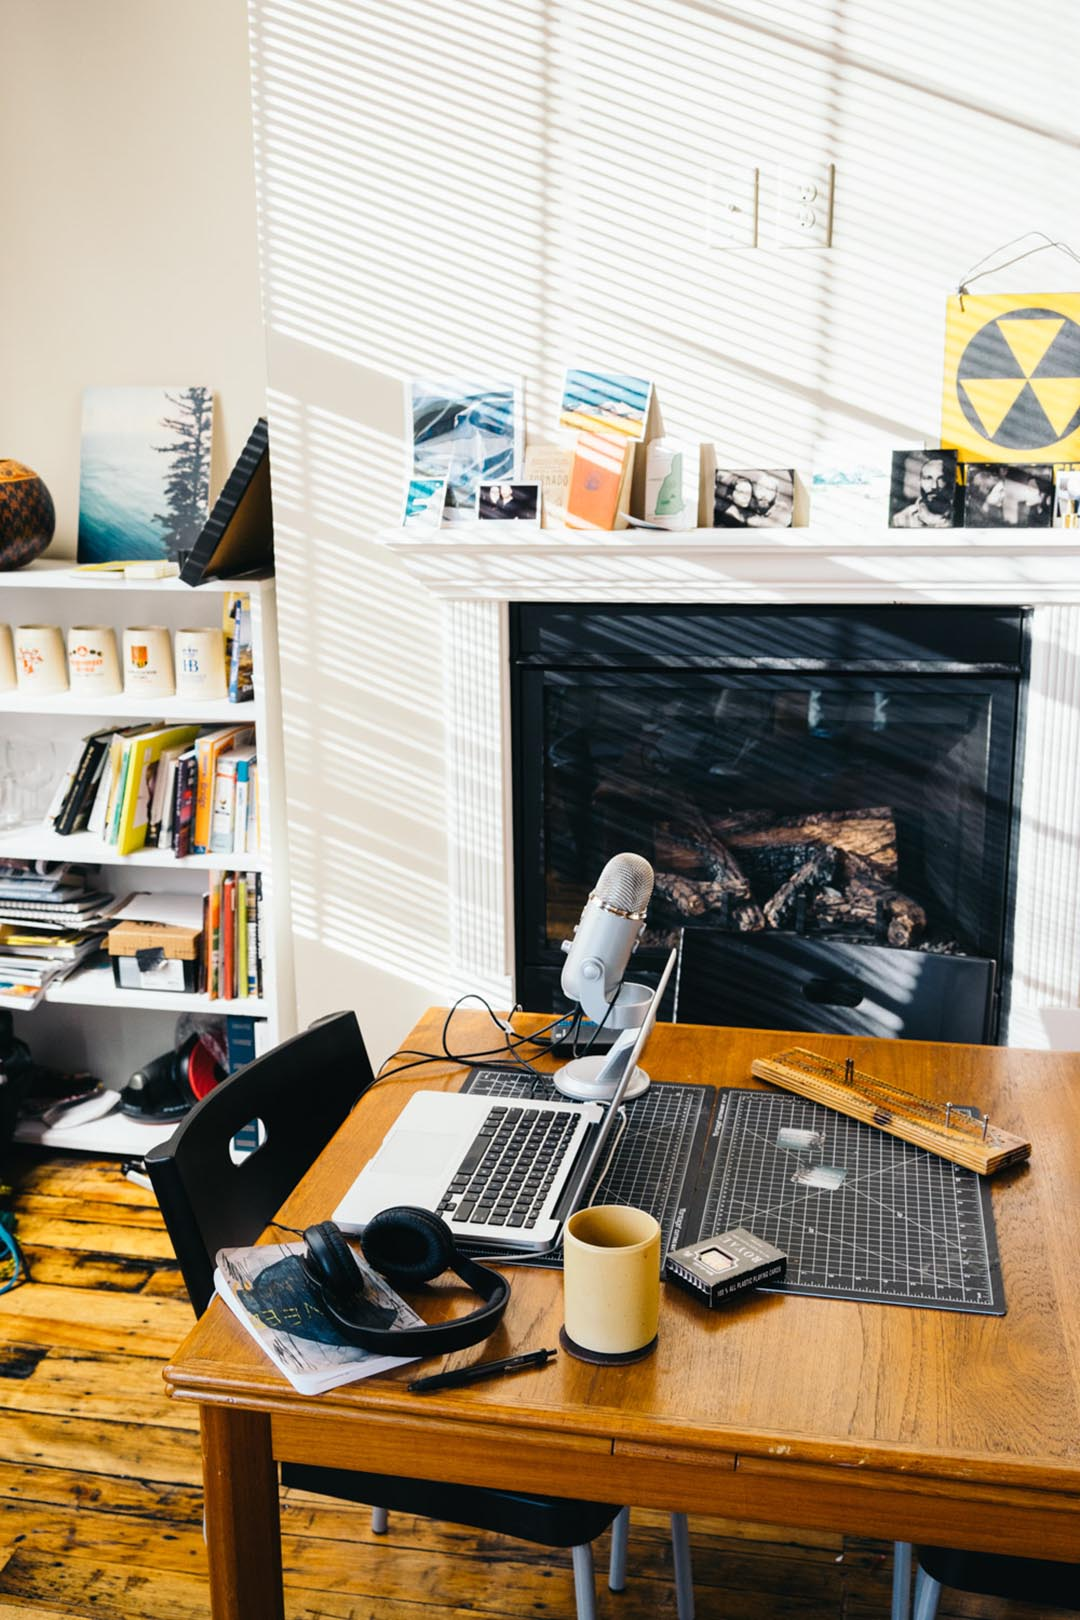 podcast-workspace-1-of-2